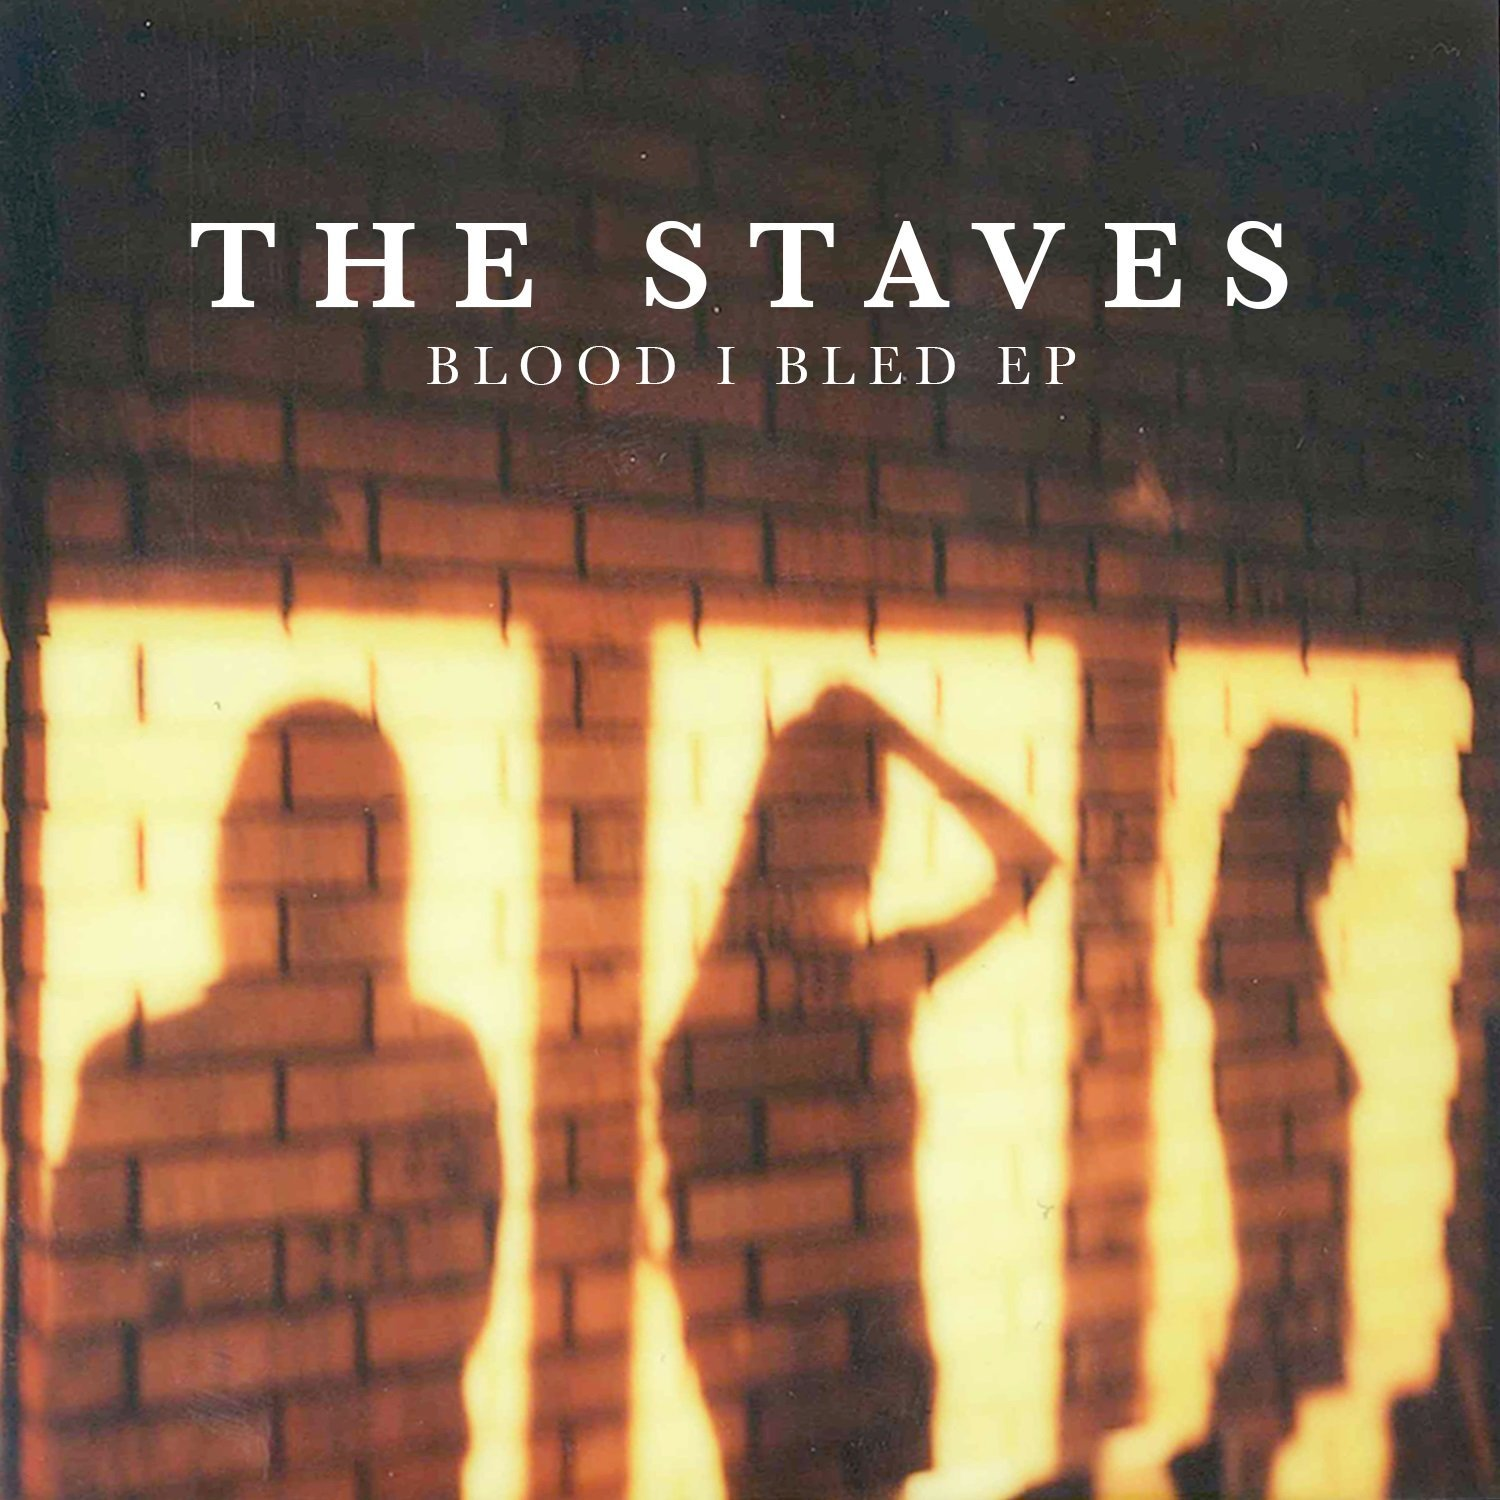 The Staves - The Blood I Bled